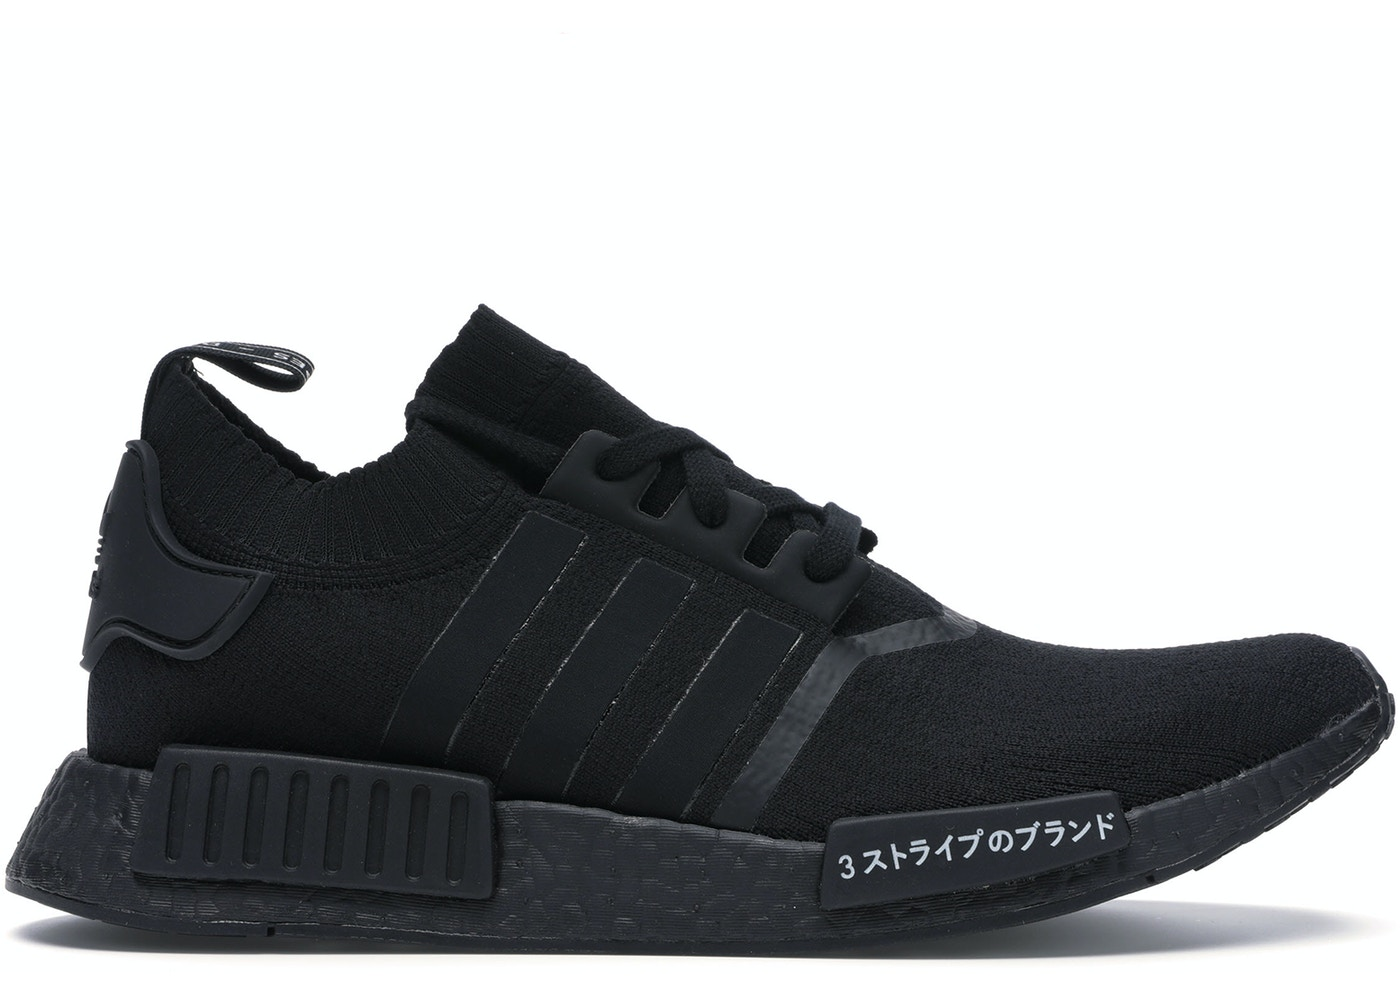 adidas NMD R1 Japan Triple Black - BZ0220 f0097e93c